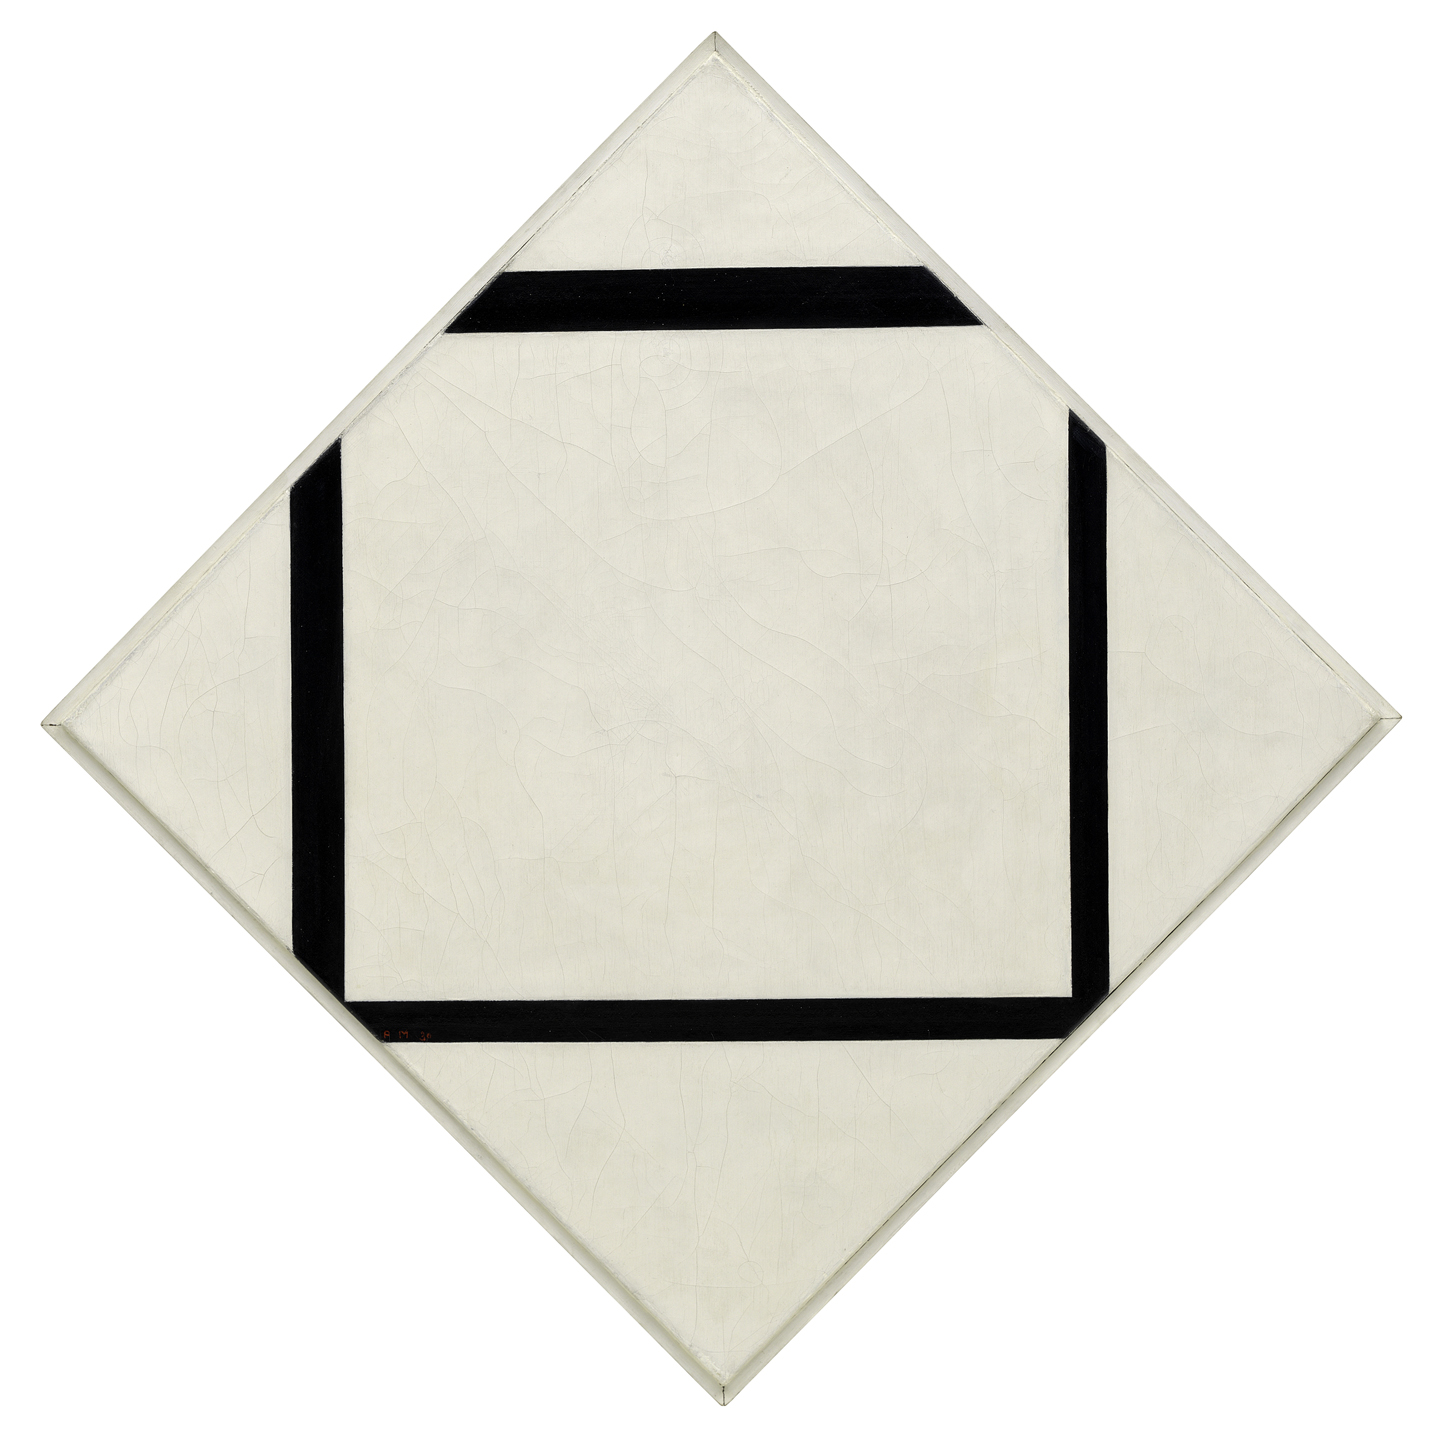 Composition No. 1: Lozenge with Four Lines (1930), by Piet Mondrian. Oil on canvas, 75.2 x 75.2 cm; vertical axis: 105 cm. Solomon R. Guggenheim Museum, New York. © 2016 Mondrian/Holtzman Trust.